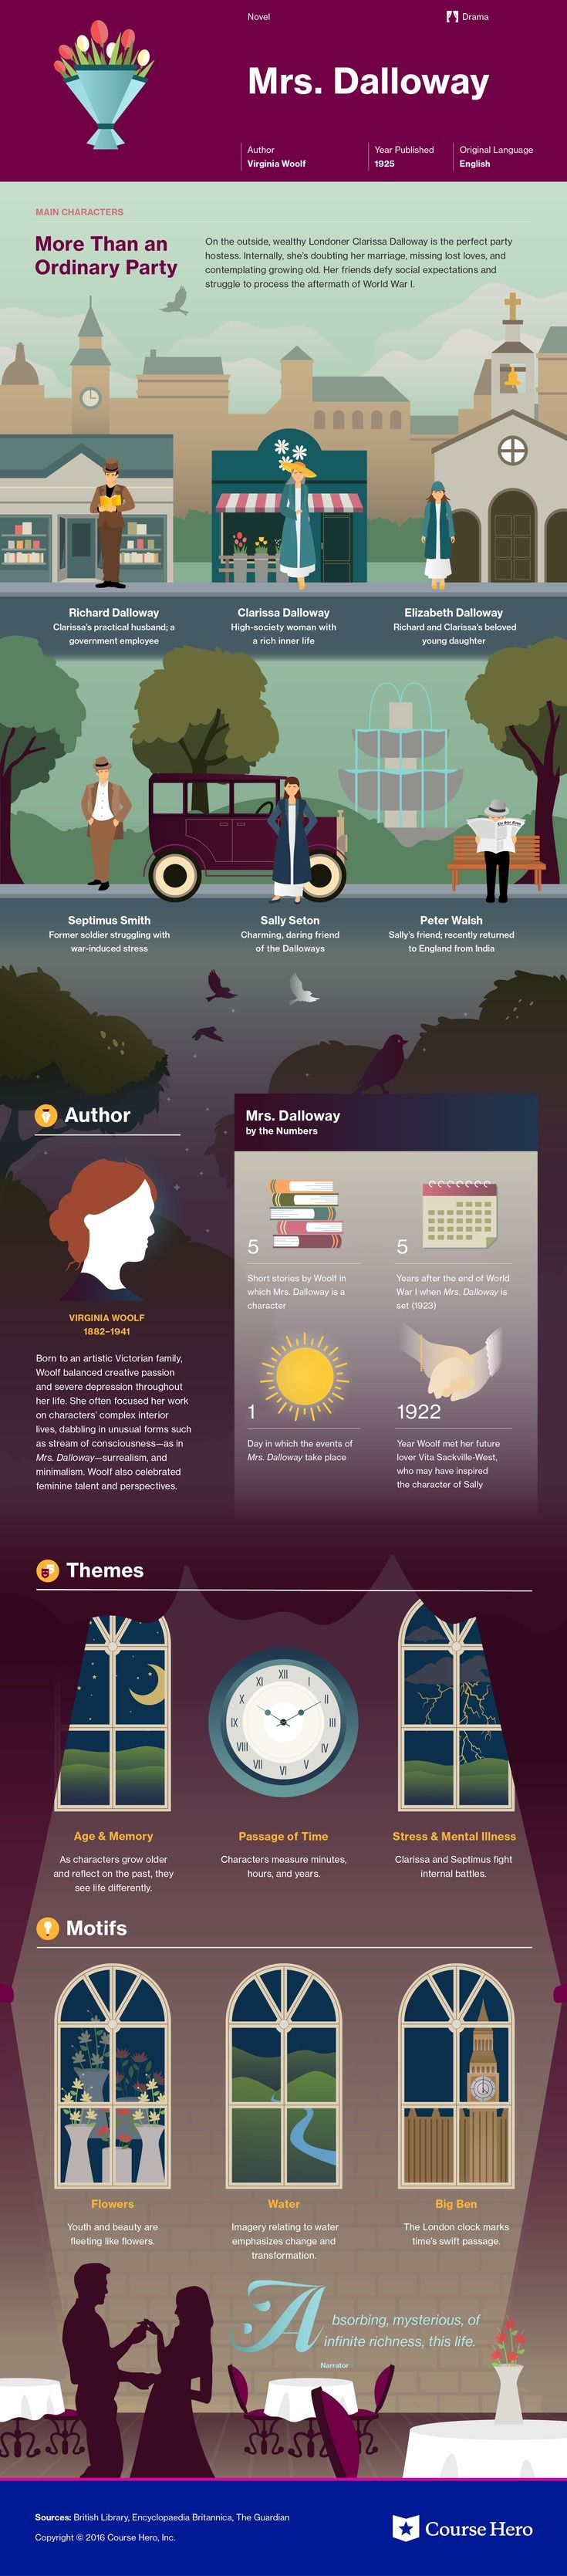 this coursehero infographic on mrs dalloway is both visually this coursehero infographic on mrs dalloway is both visually stunning and